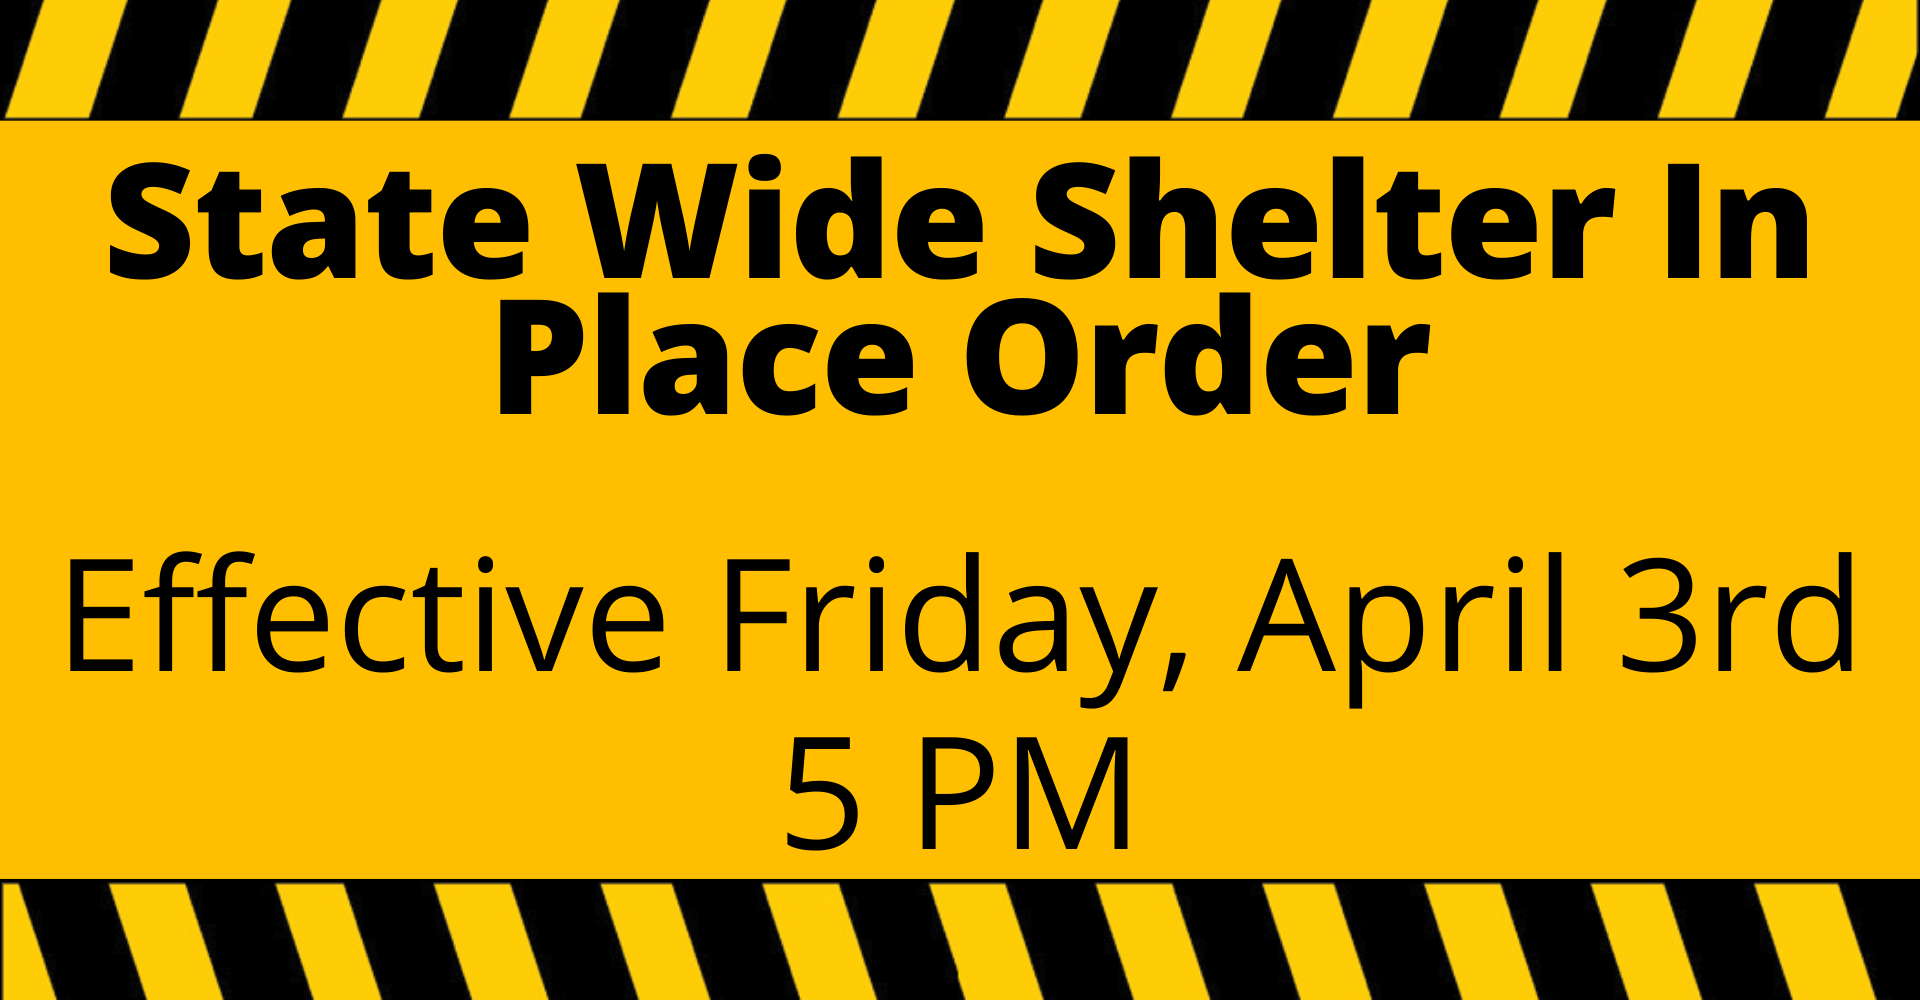 Statewide Shelter in Place Order